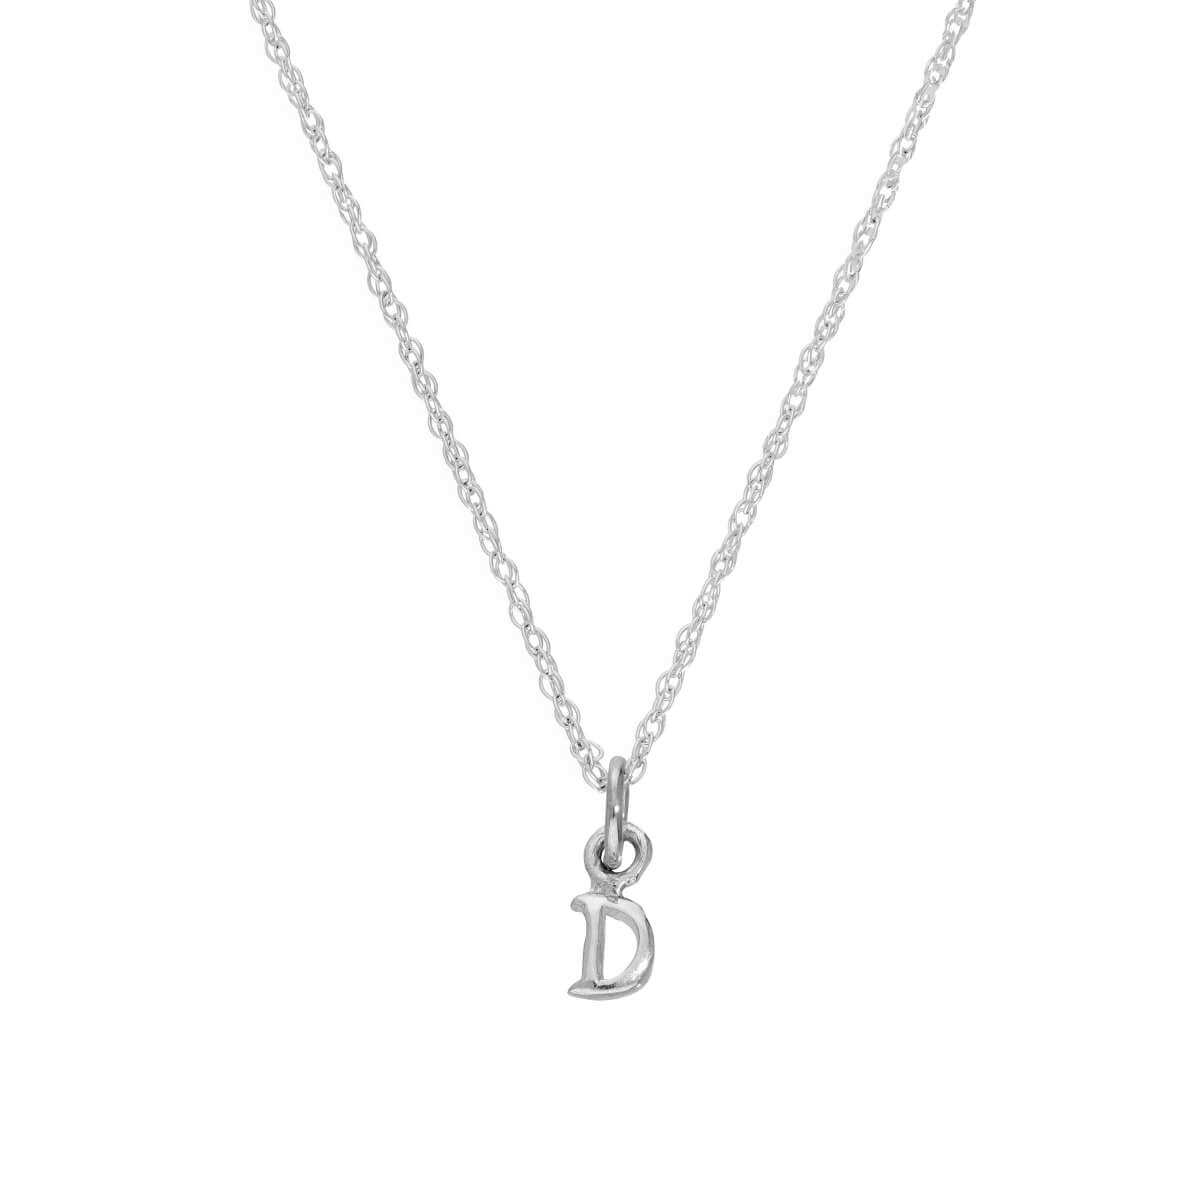 Tiny Sterling Silver Alphabet Letter D Pendant Necklace 14 - 22 Inches